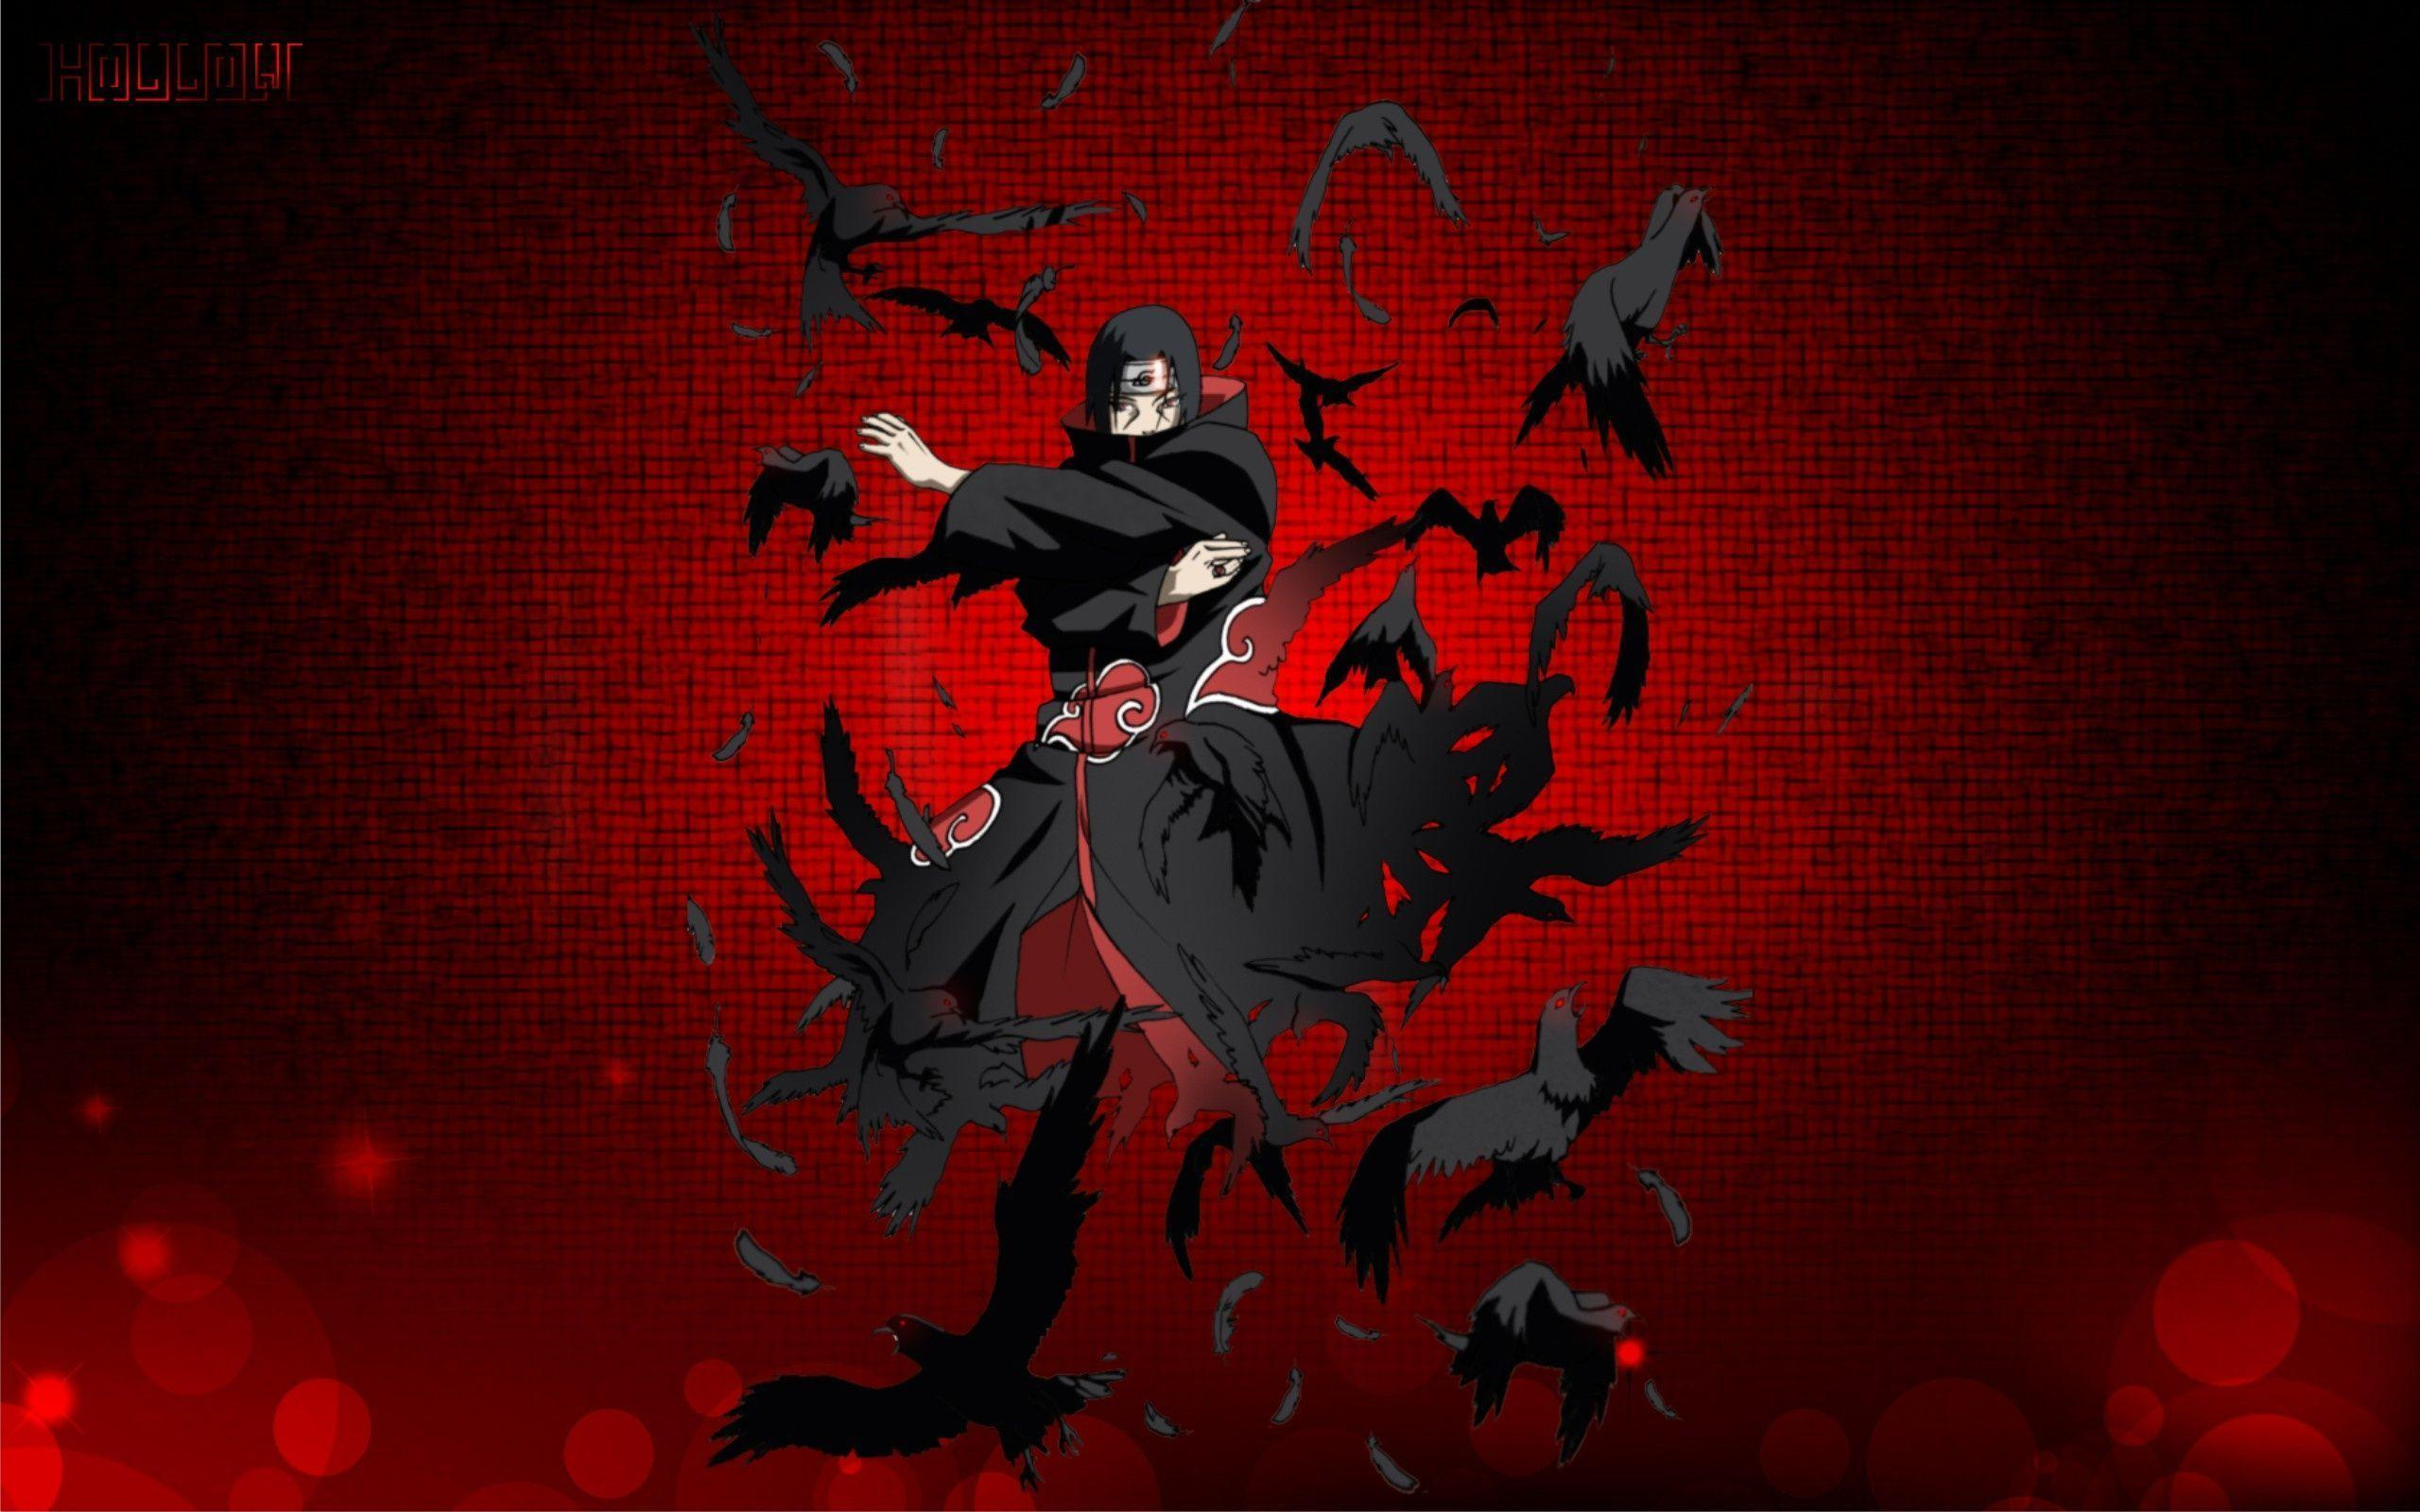 Most Downloaded Itachi Uchiha Wallpapers - Full HD wallpaper search